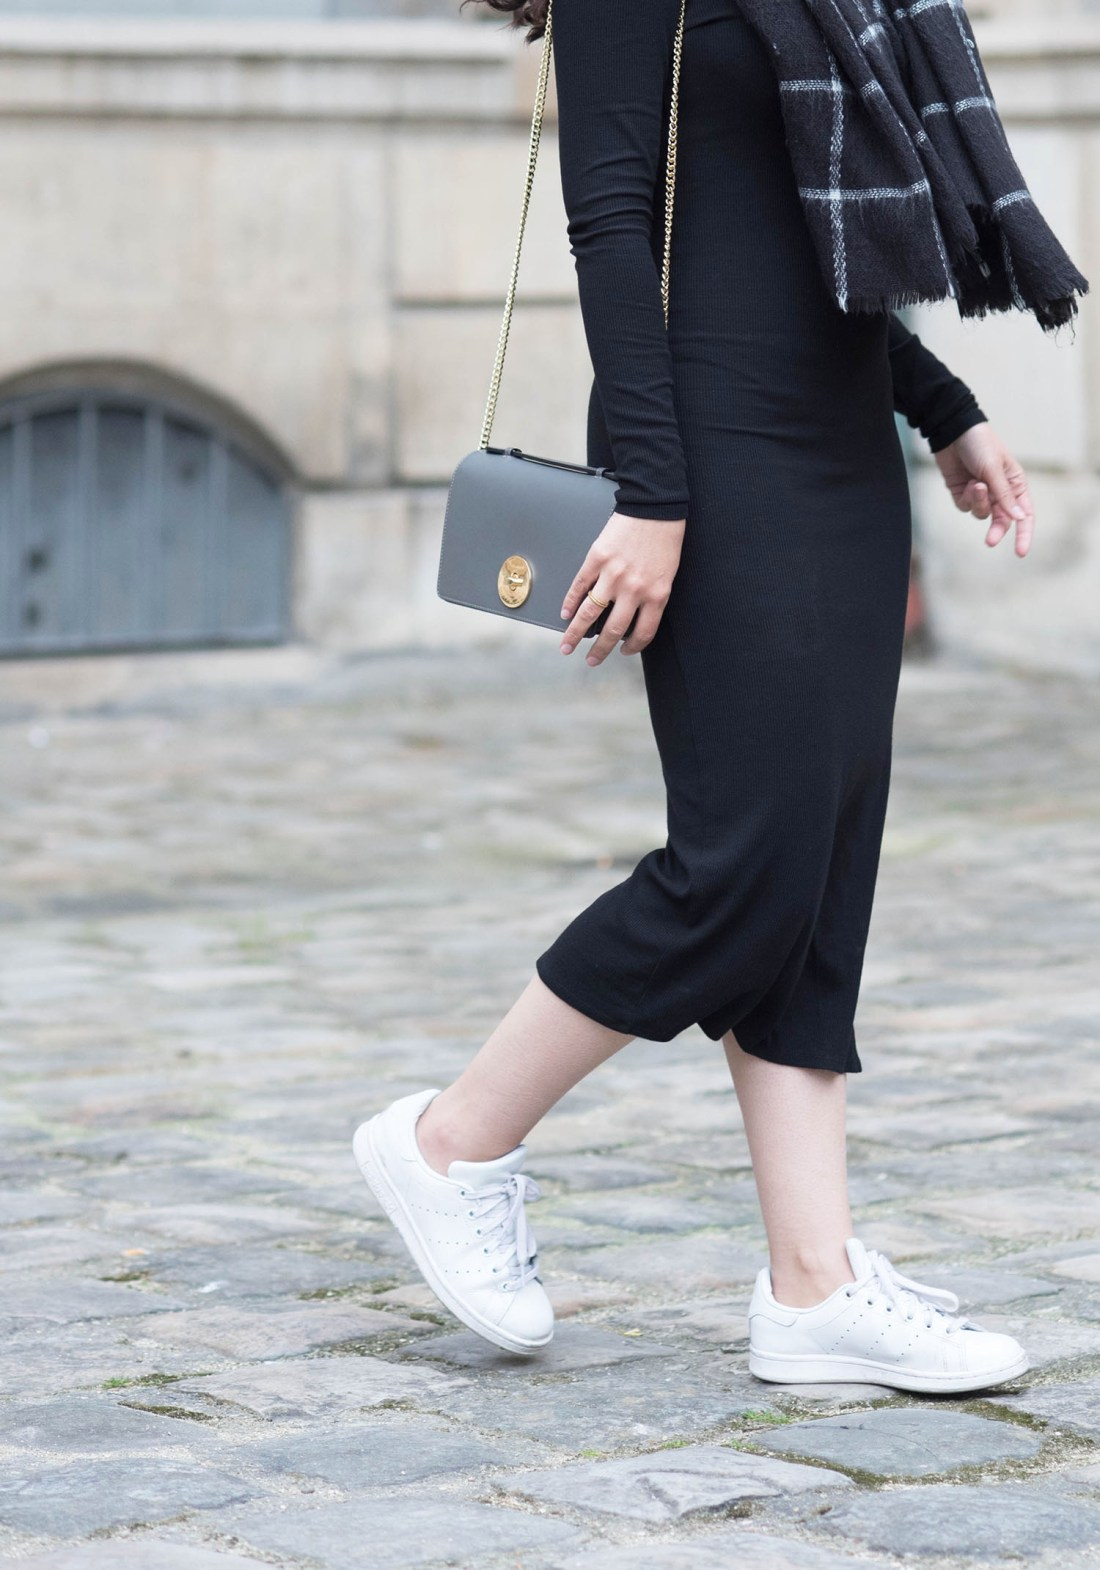 Outfit details on Canadian fashion blogger Cee Fardoe, including a Privacy Please midway dress and Camelia Roma handbag